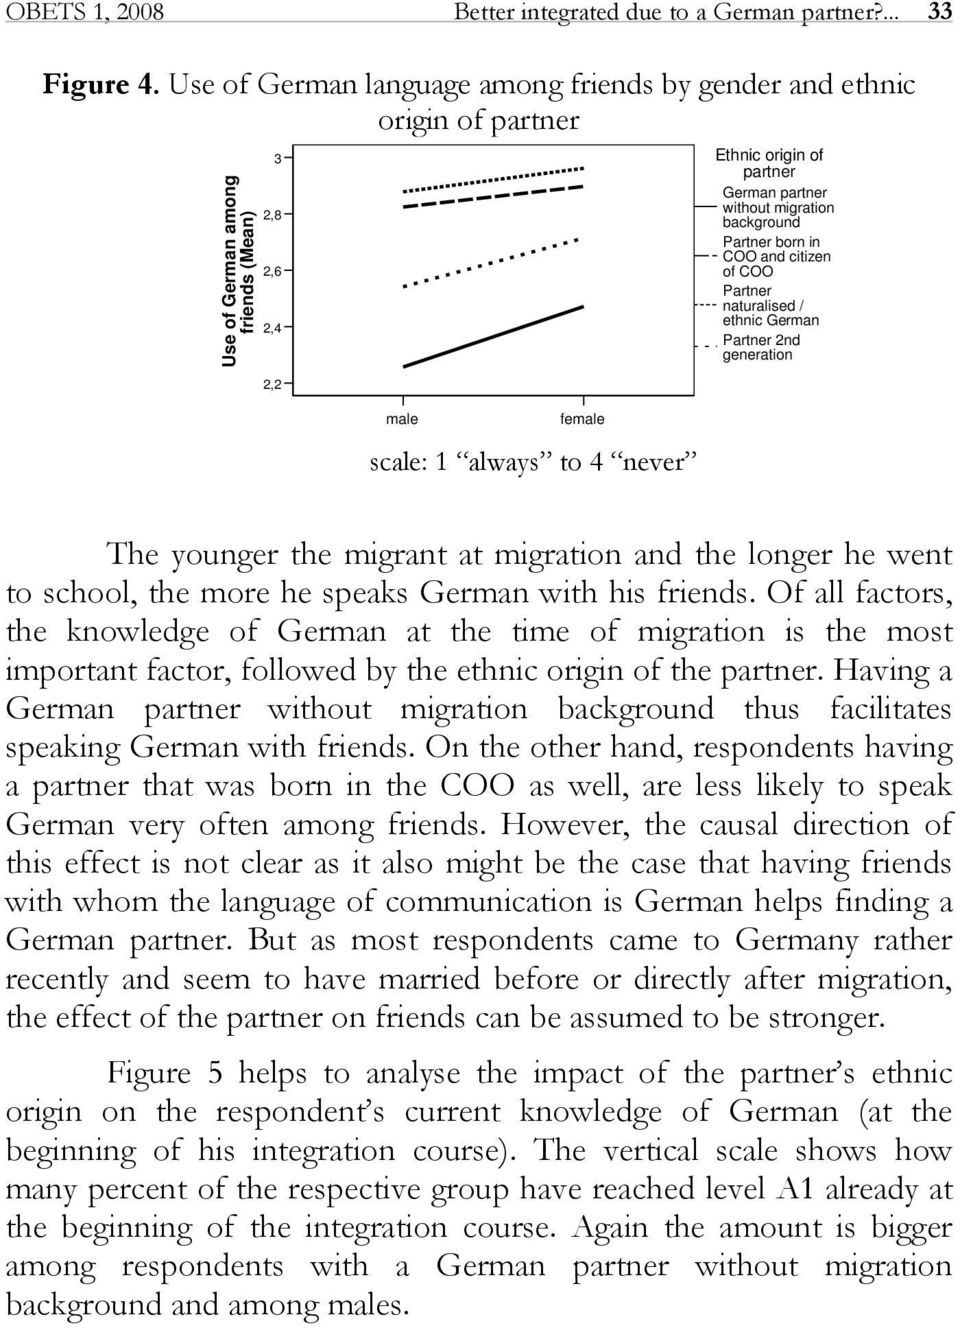 partner without migration background Partner born in COO and citizen of COO Partner naturalised / ethnic German Partner 2nd generation The younger the migrant at migration and the longer he went to